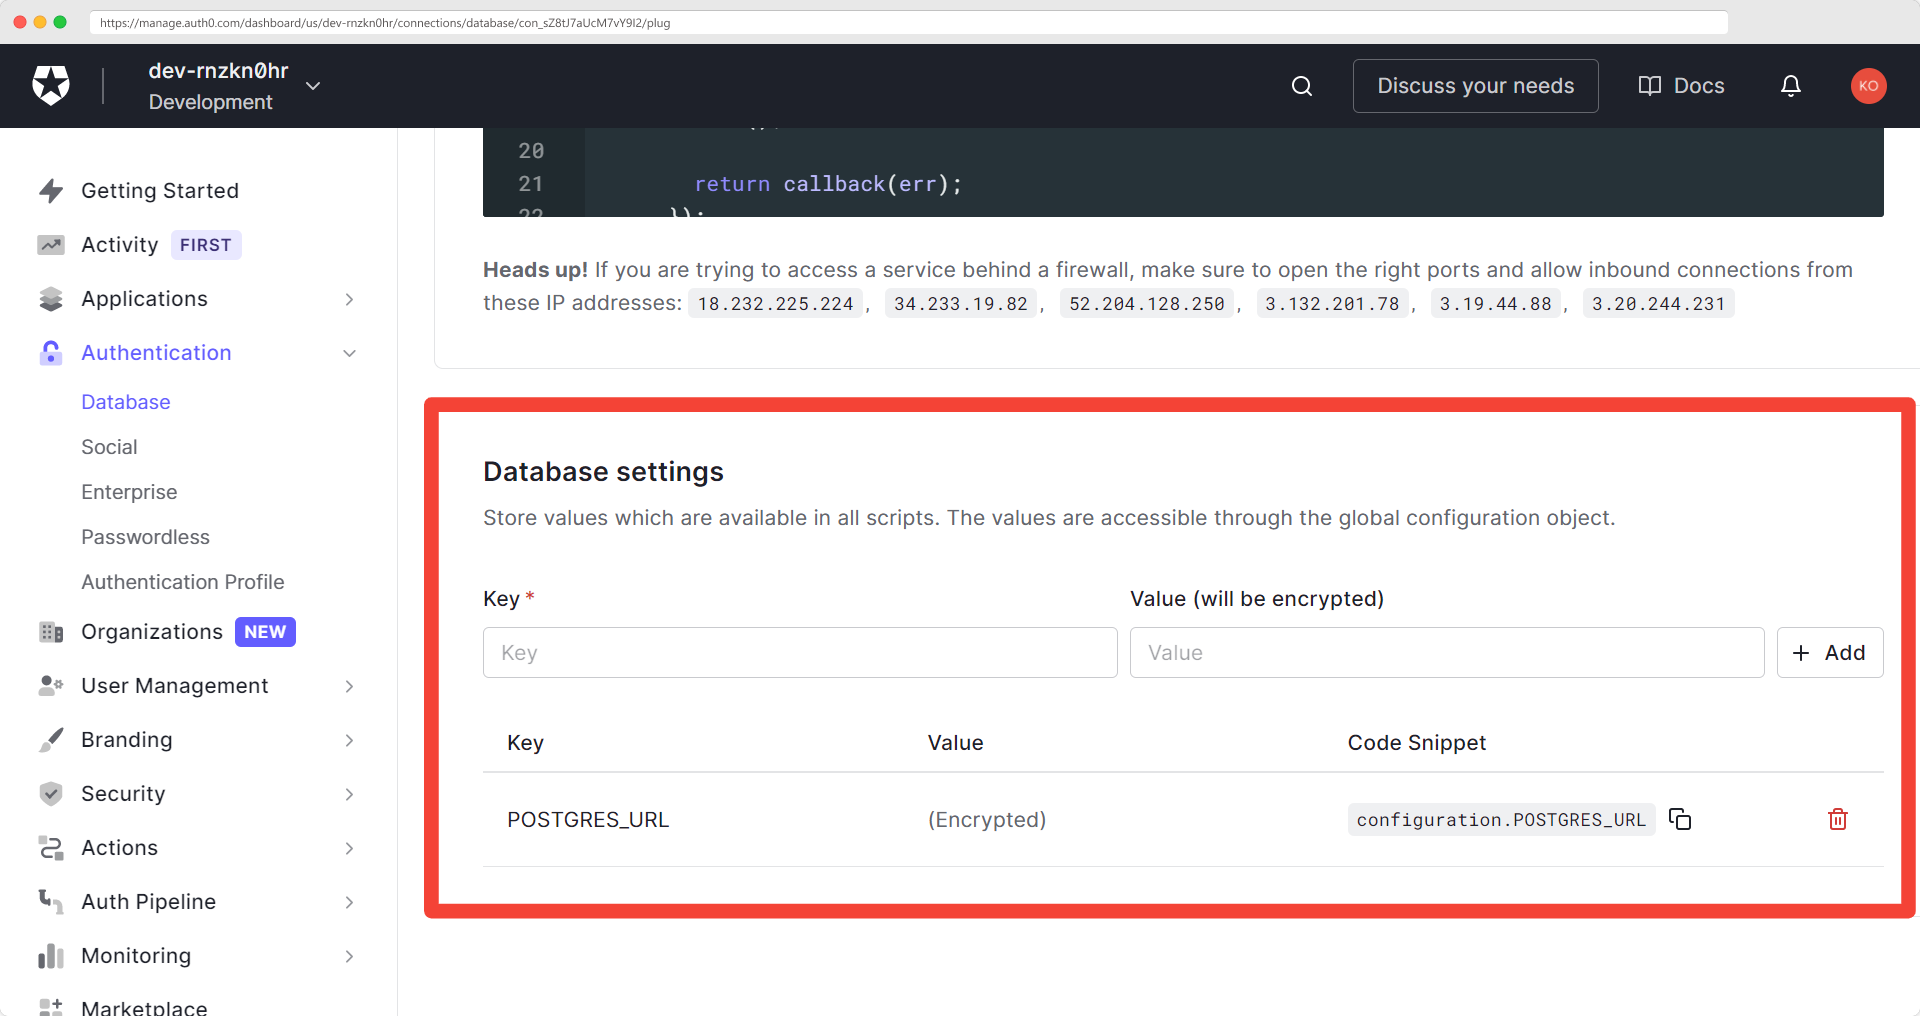 Adding the database URL as an env variable 'POSTGRES_URL' settings section